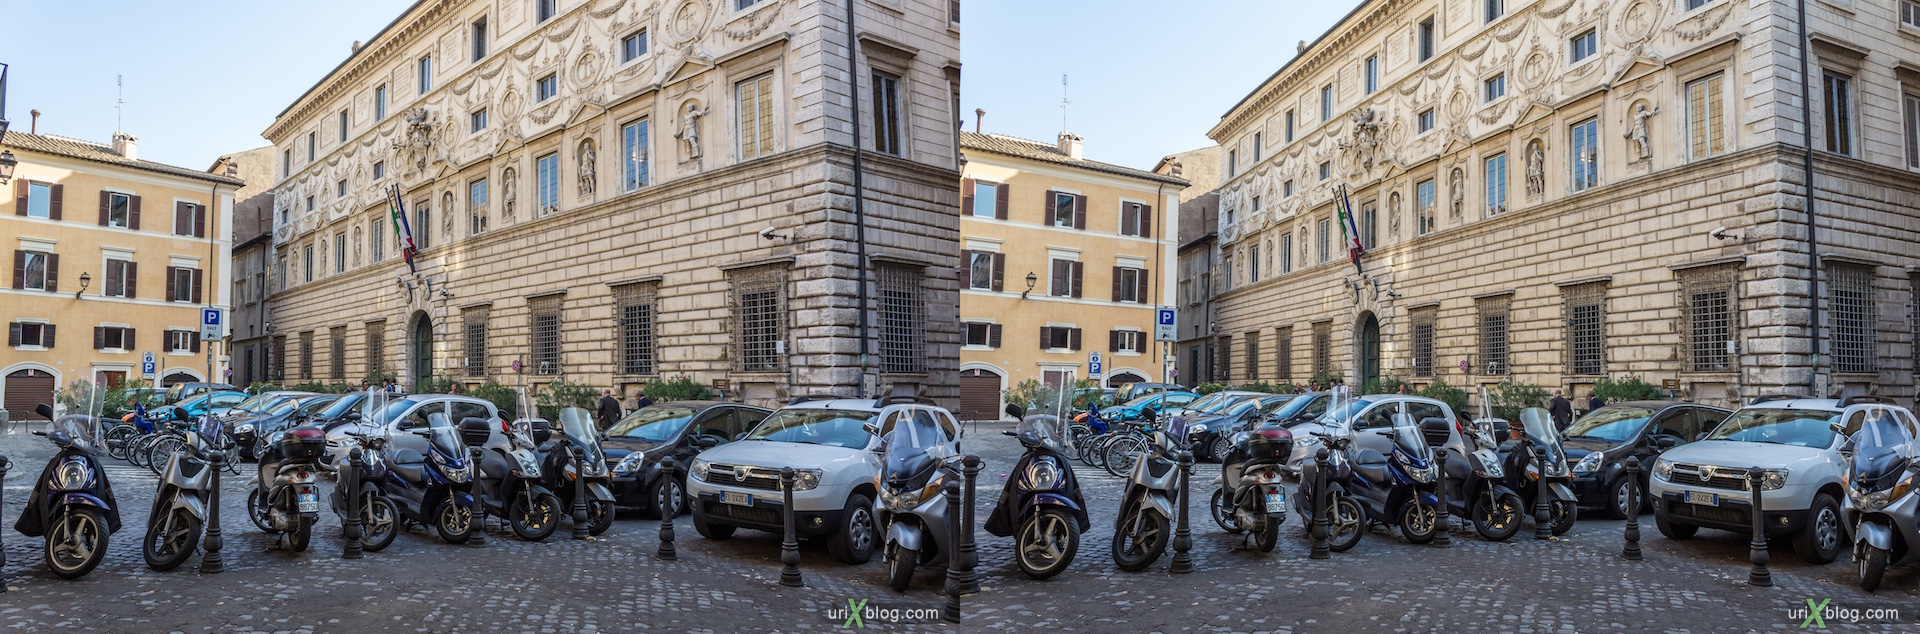 2012, piazza della Quercia square, 3D, stereo pair, cross-eyed, crossview, cross view stereo pair